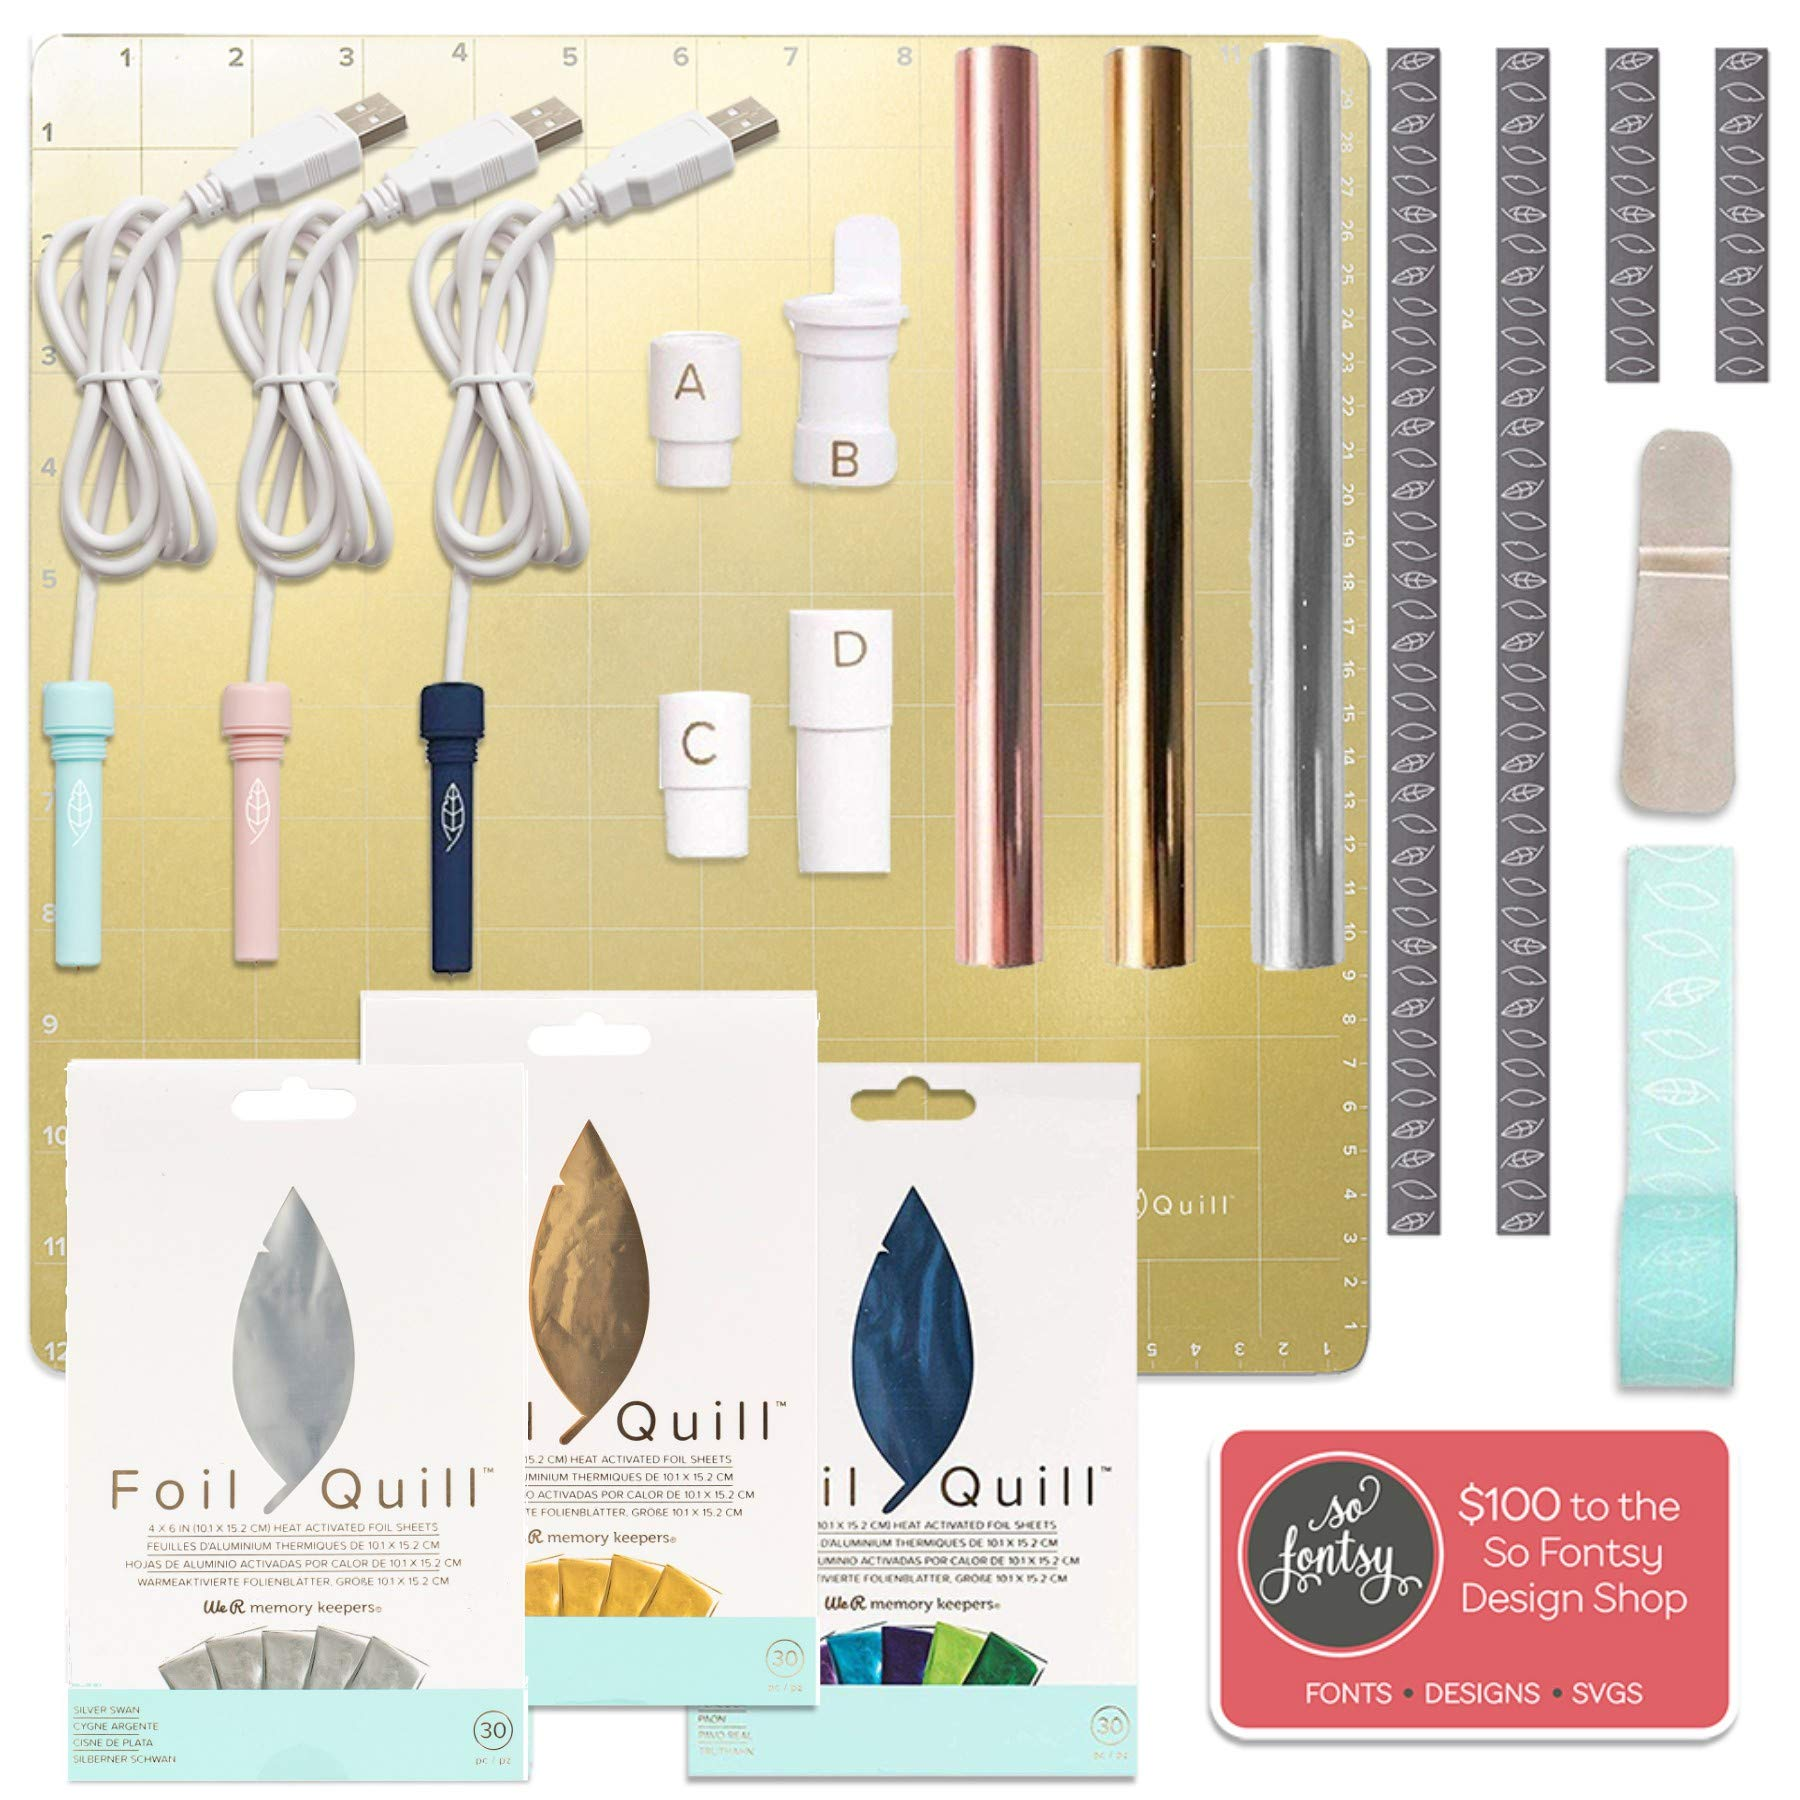 Foil Quill All-in-One Deluxe Bundle, 3 Quill Sizes, Magnetic Mat, 90 Foil Sheets, Adapters, Foils, Tape, Design Card